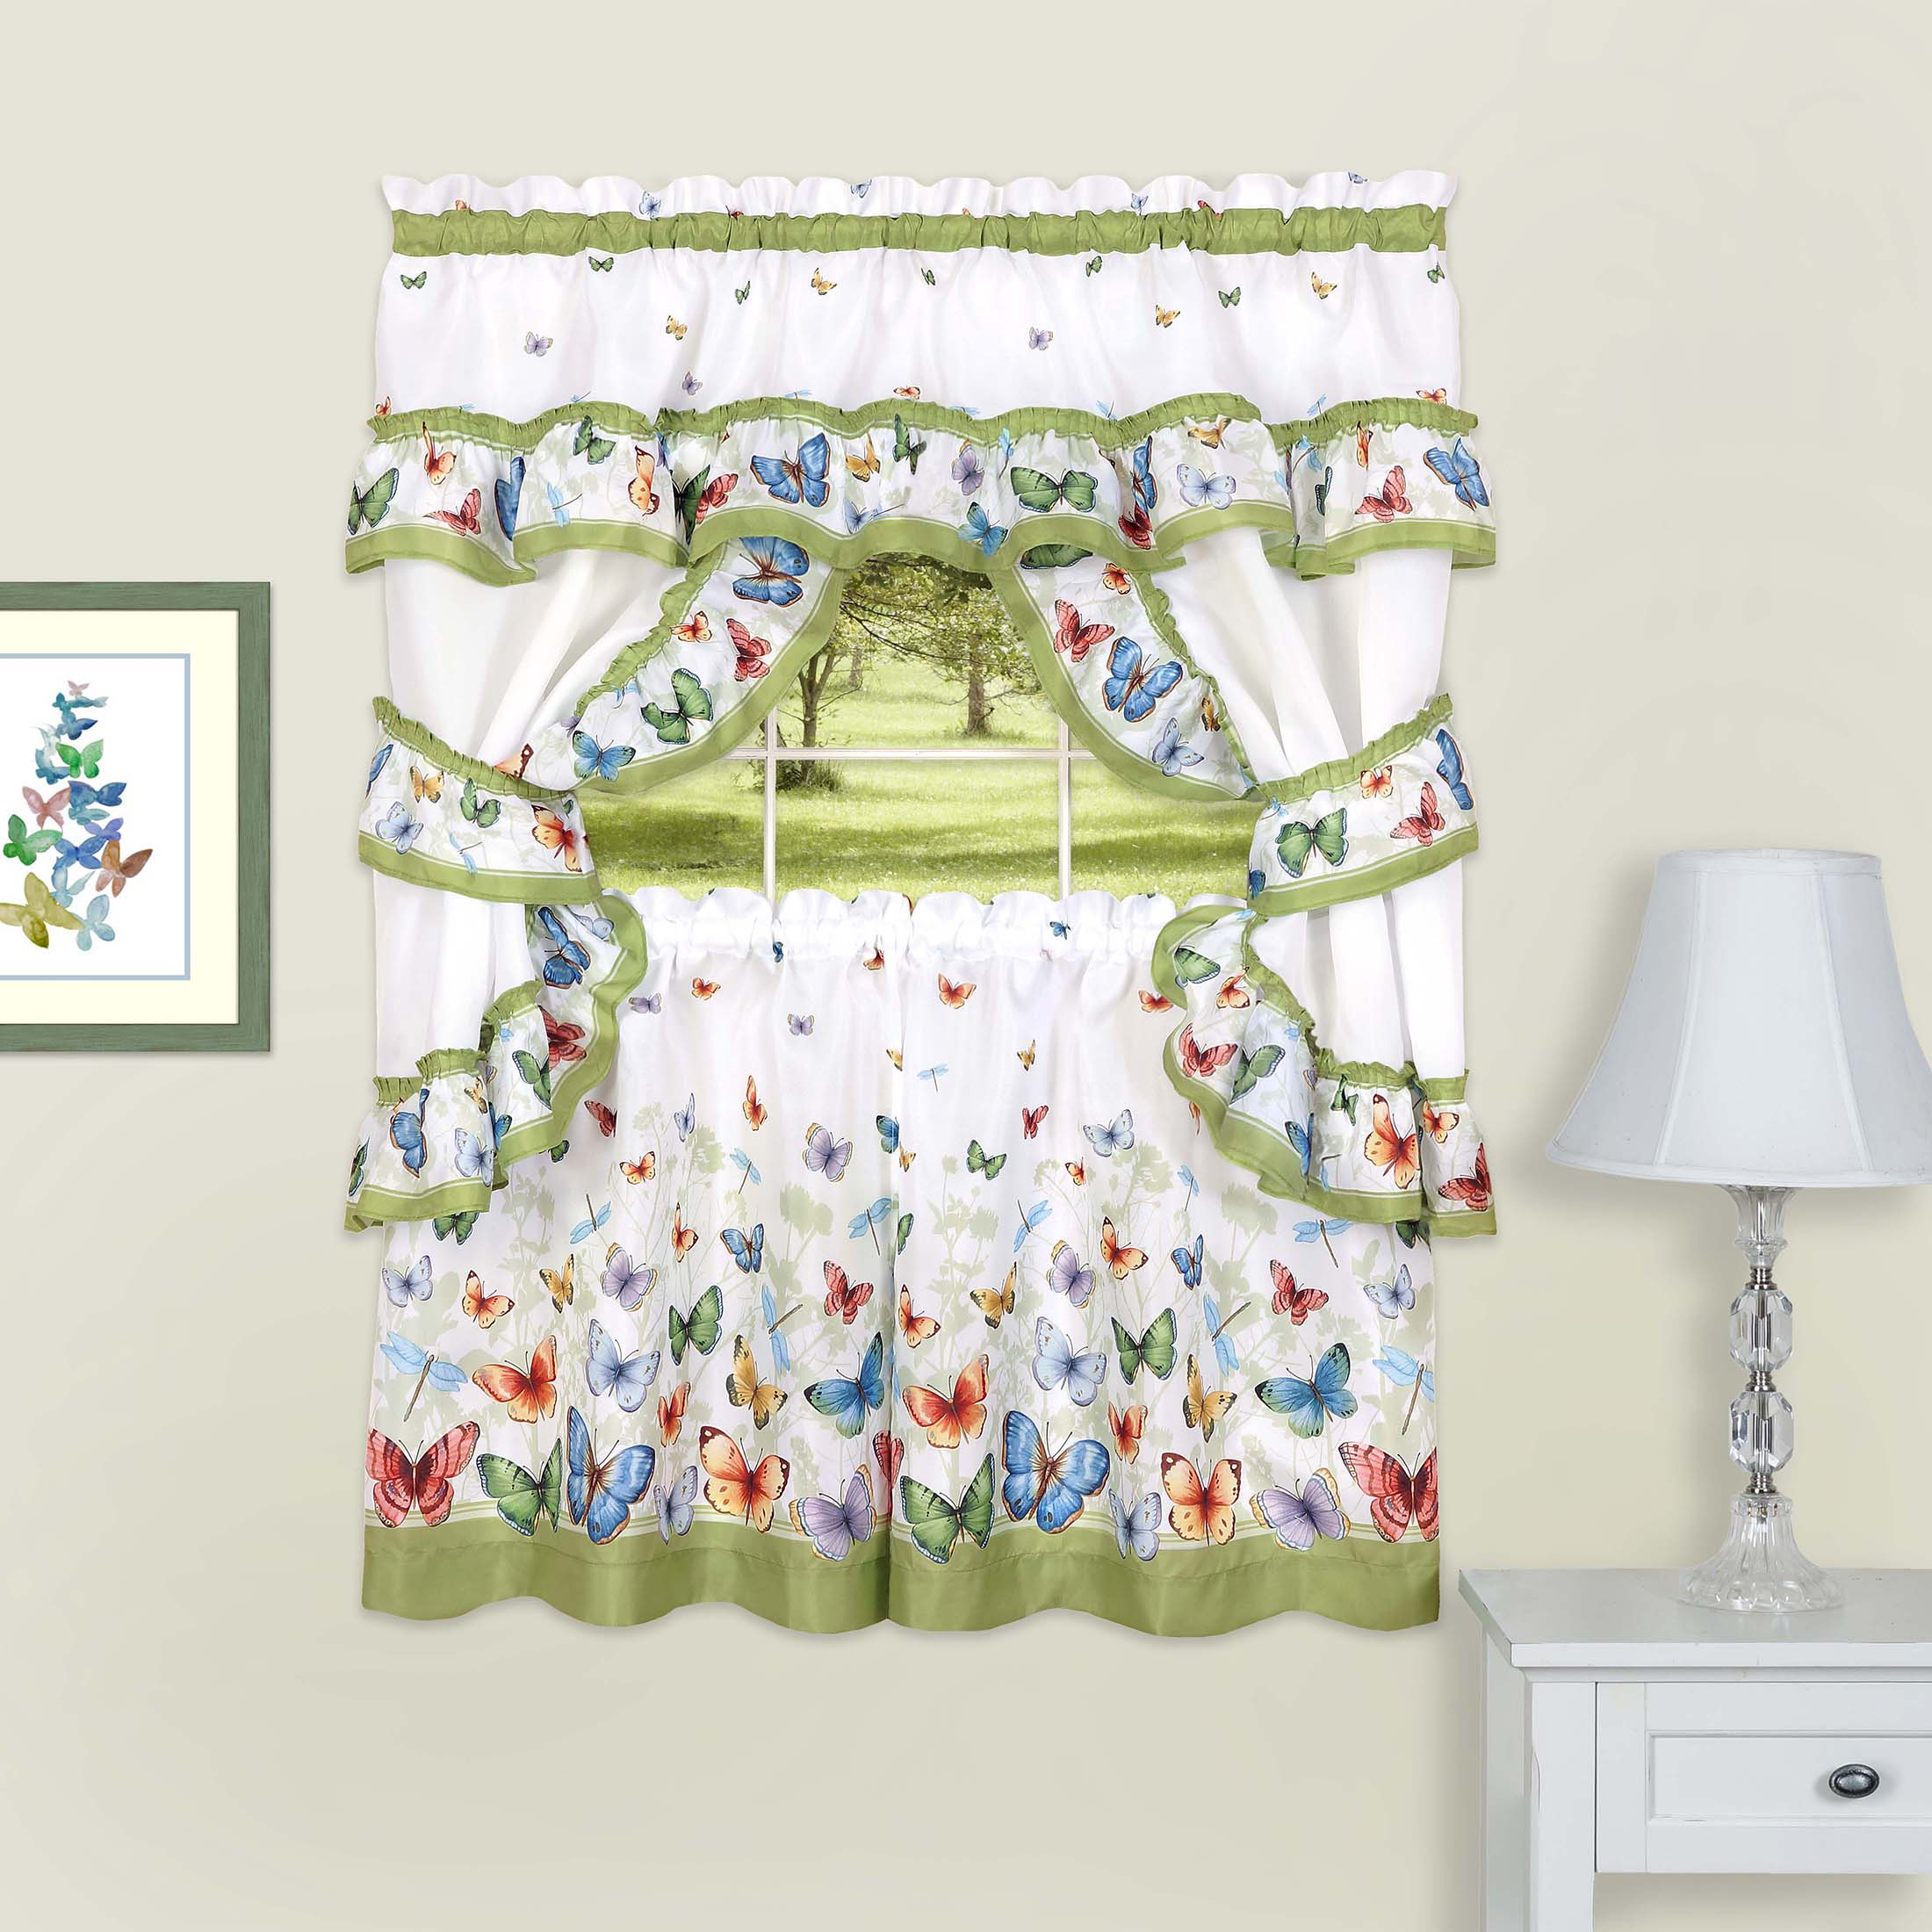 Most Recently Released Chateau Wines Cottage Kitchen Curtain Tier And Valance Sets Inside Details About 5C Window Kitchen Curtain Cottage Set, Butterflies, Tiers,  Valance, Tiebacks (Gallery 14 of 20)